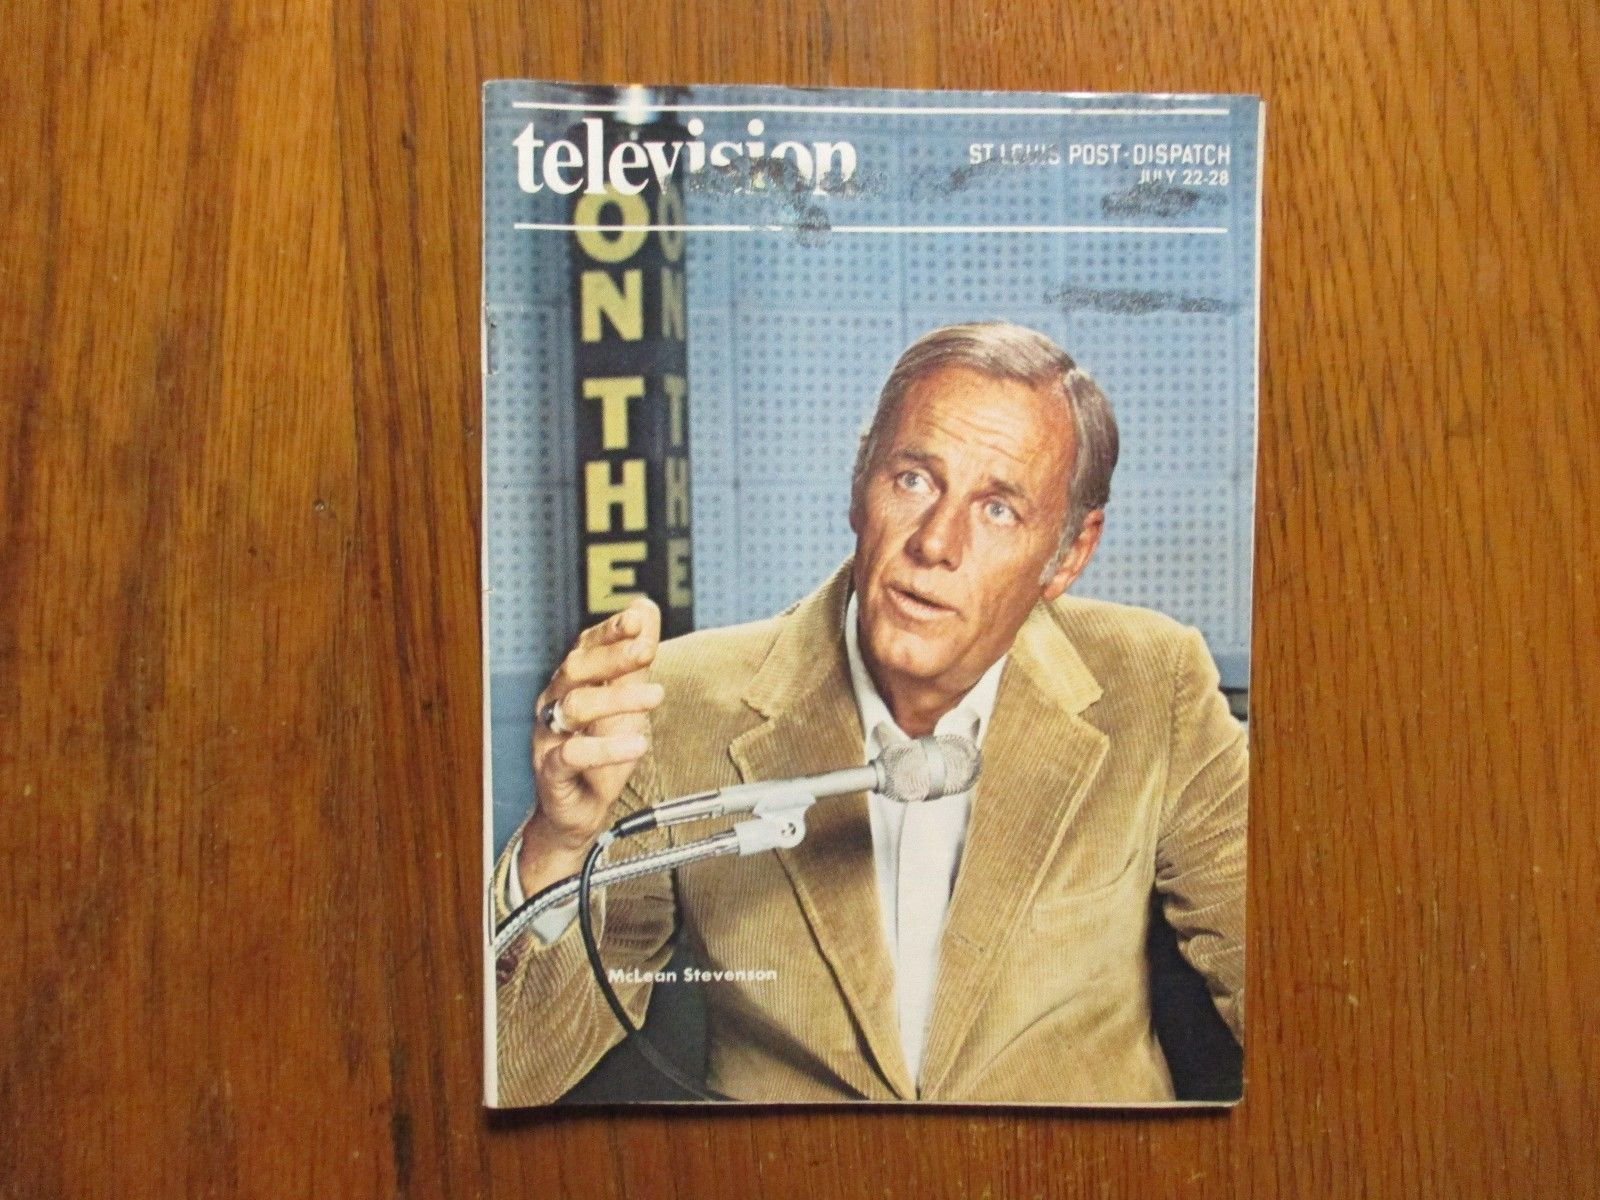 July_21_1979_St_Louis_Post-Dispatch_TV_Magazine_McLEAN_STEVENSON